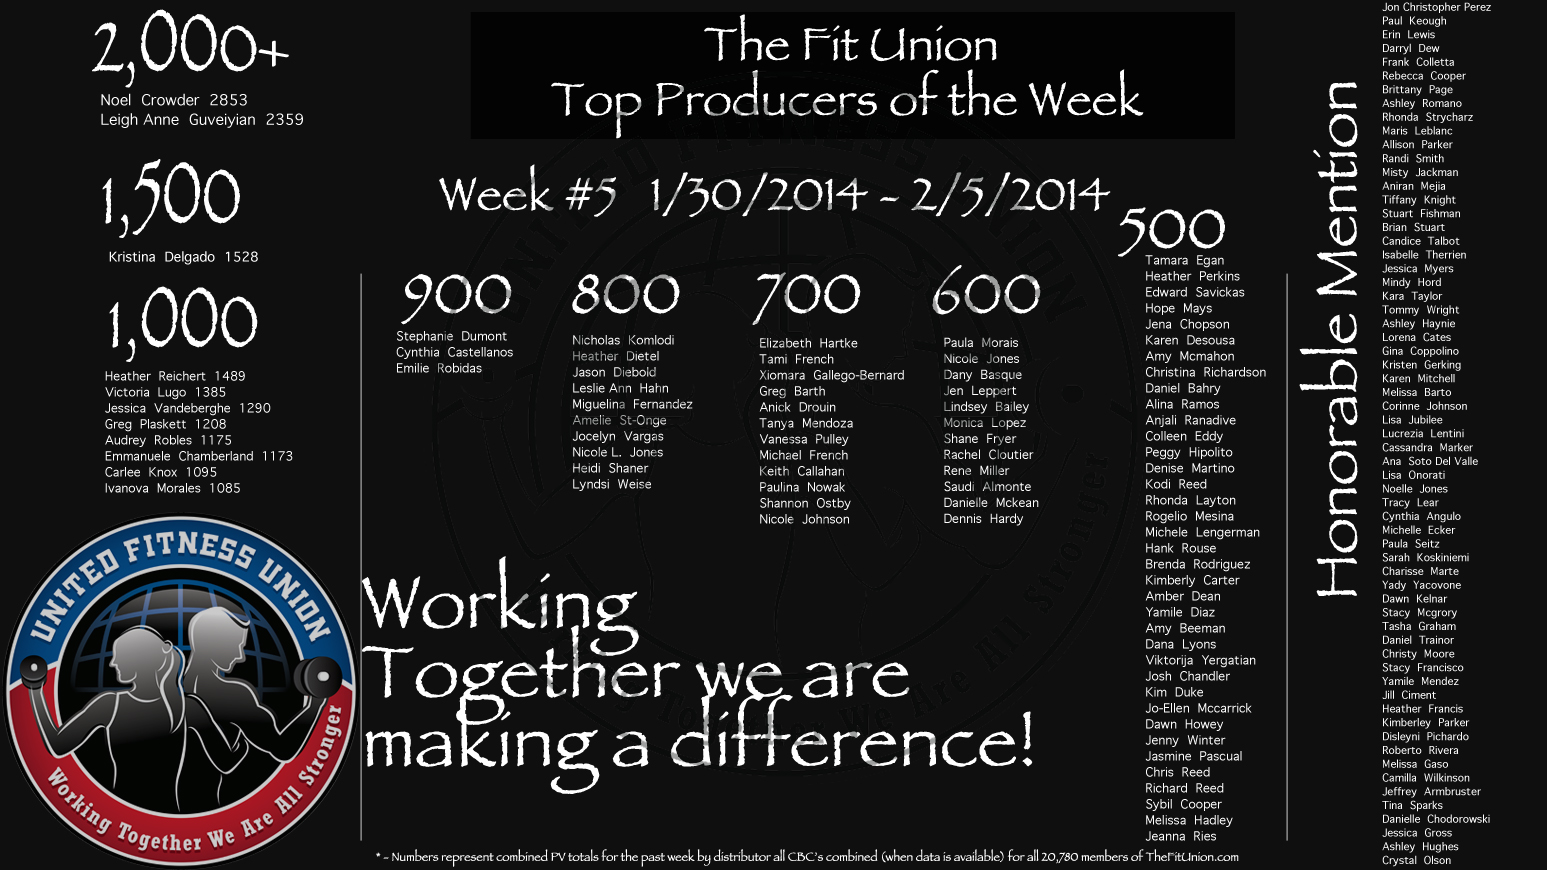 WE 2/5/2014 The Fit Union Top Producers